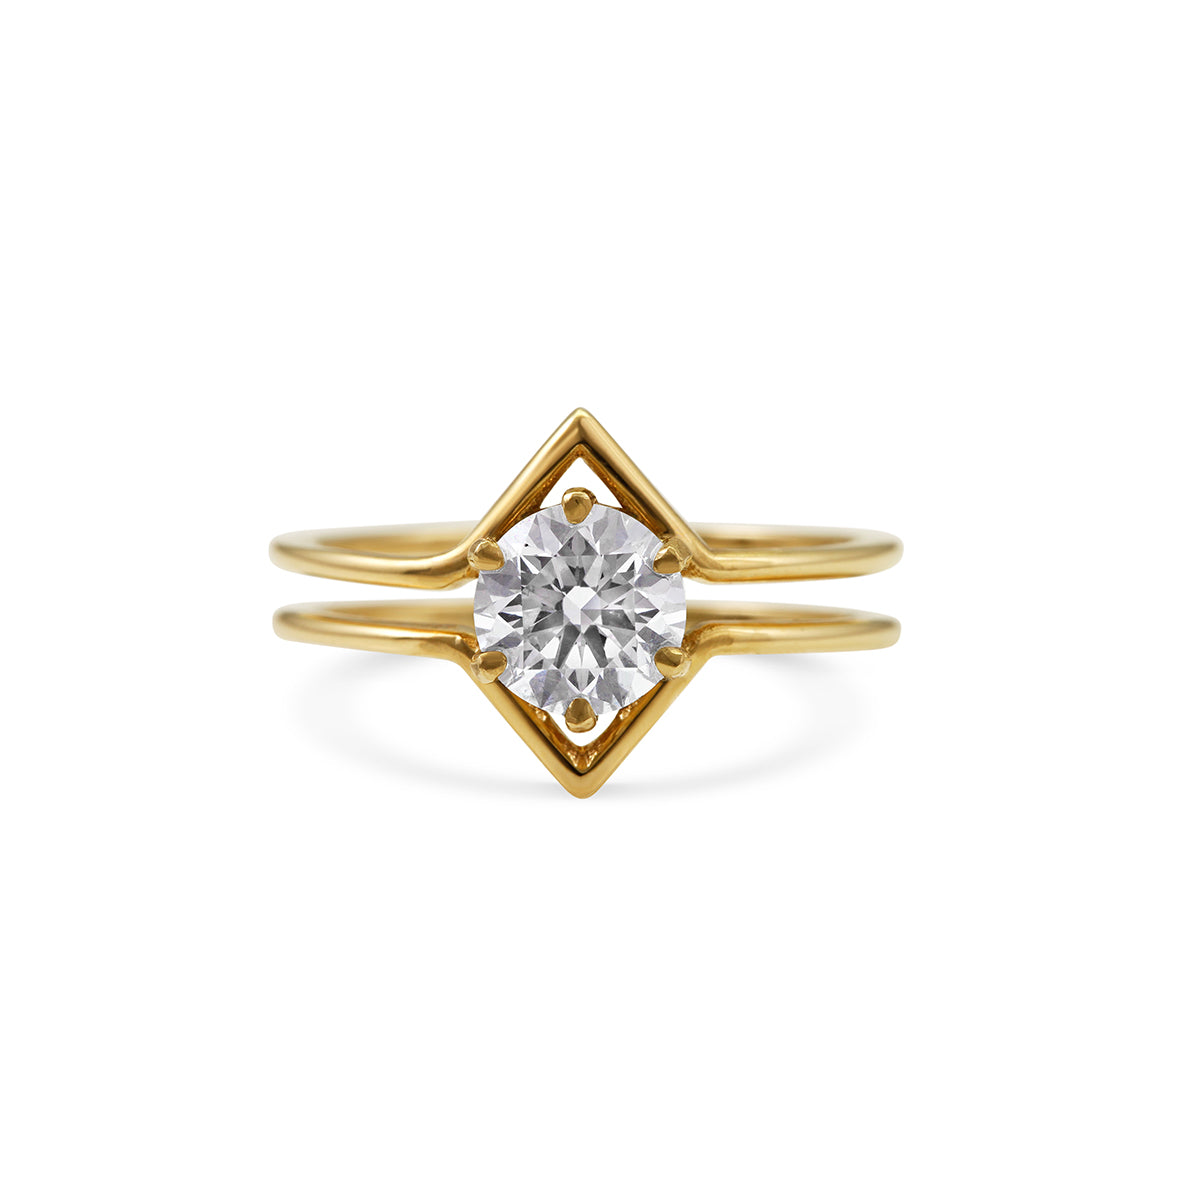 1ct Brilliant cut round diamond in 18ct yellow gold